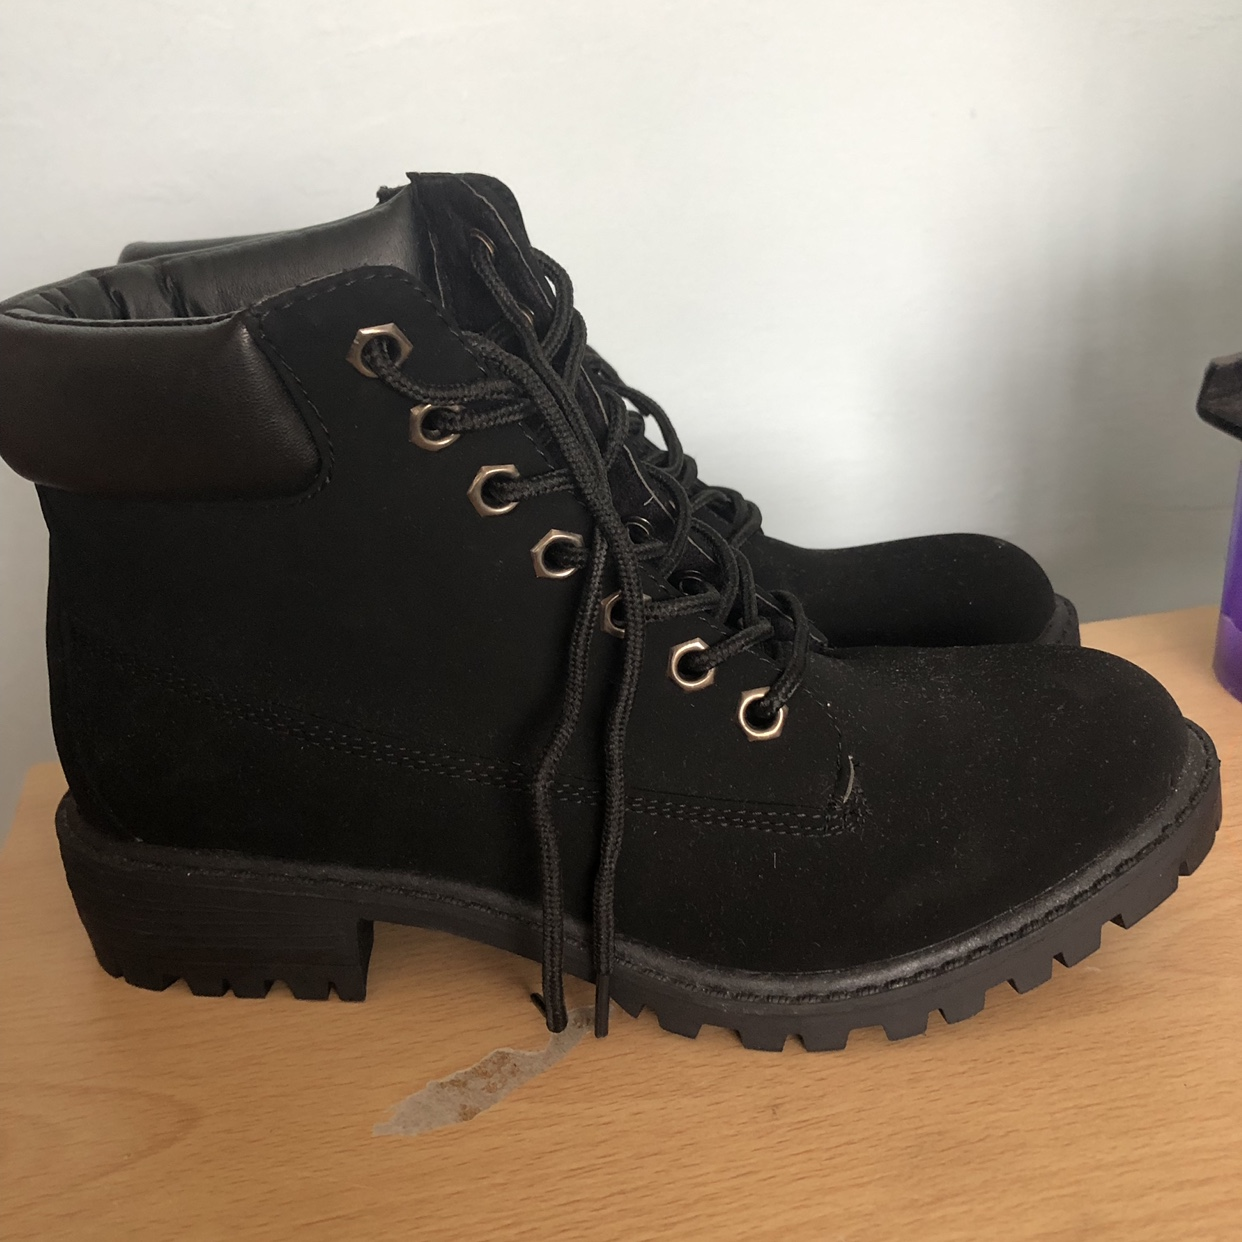 Black boots from Penneys Never worn